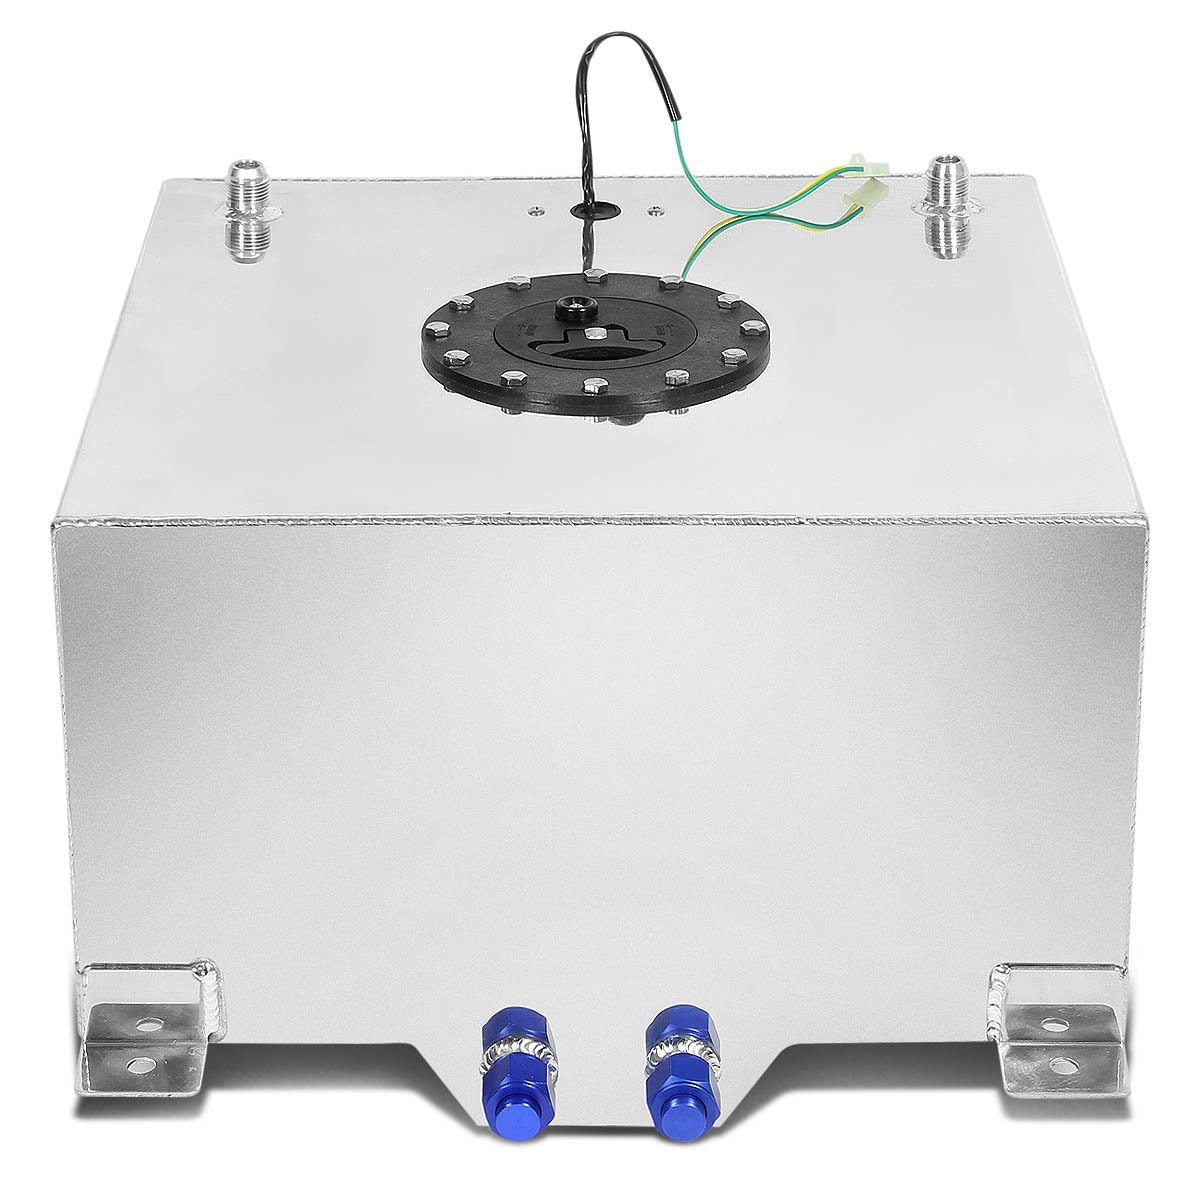 5 gallon aluminum fuel cell gas tank with level sender with black cap 33 gallon aluminum fuel cell gas tank with level sender with black cap rci fuel cell sending unit wiring diagram at panicattacktreatment.co